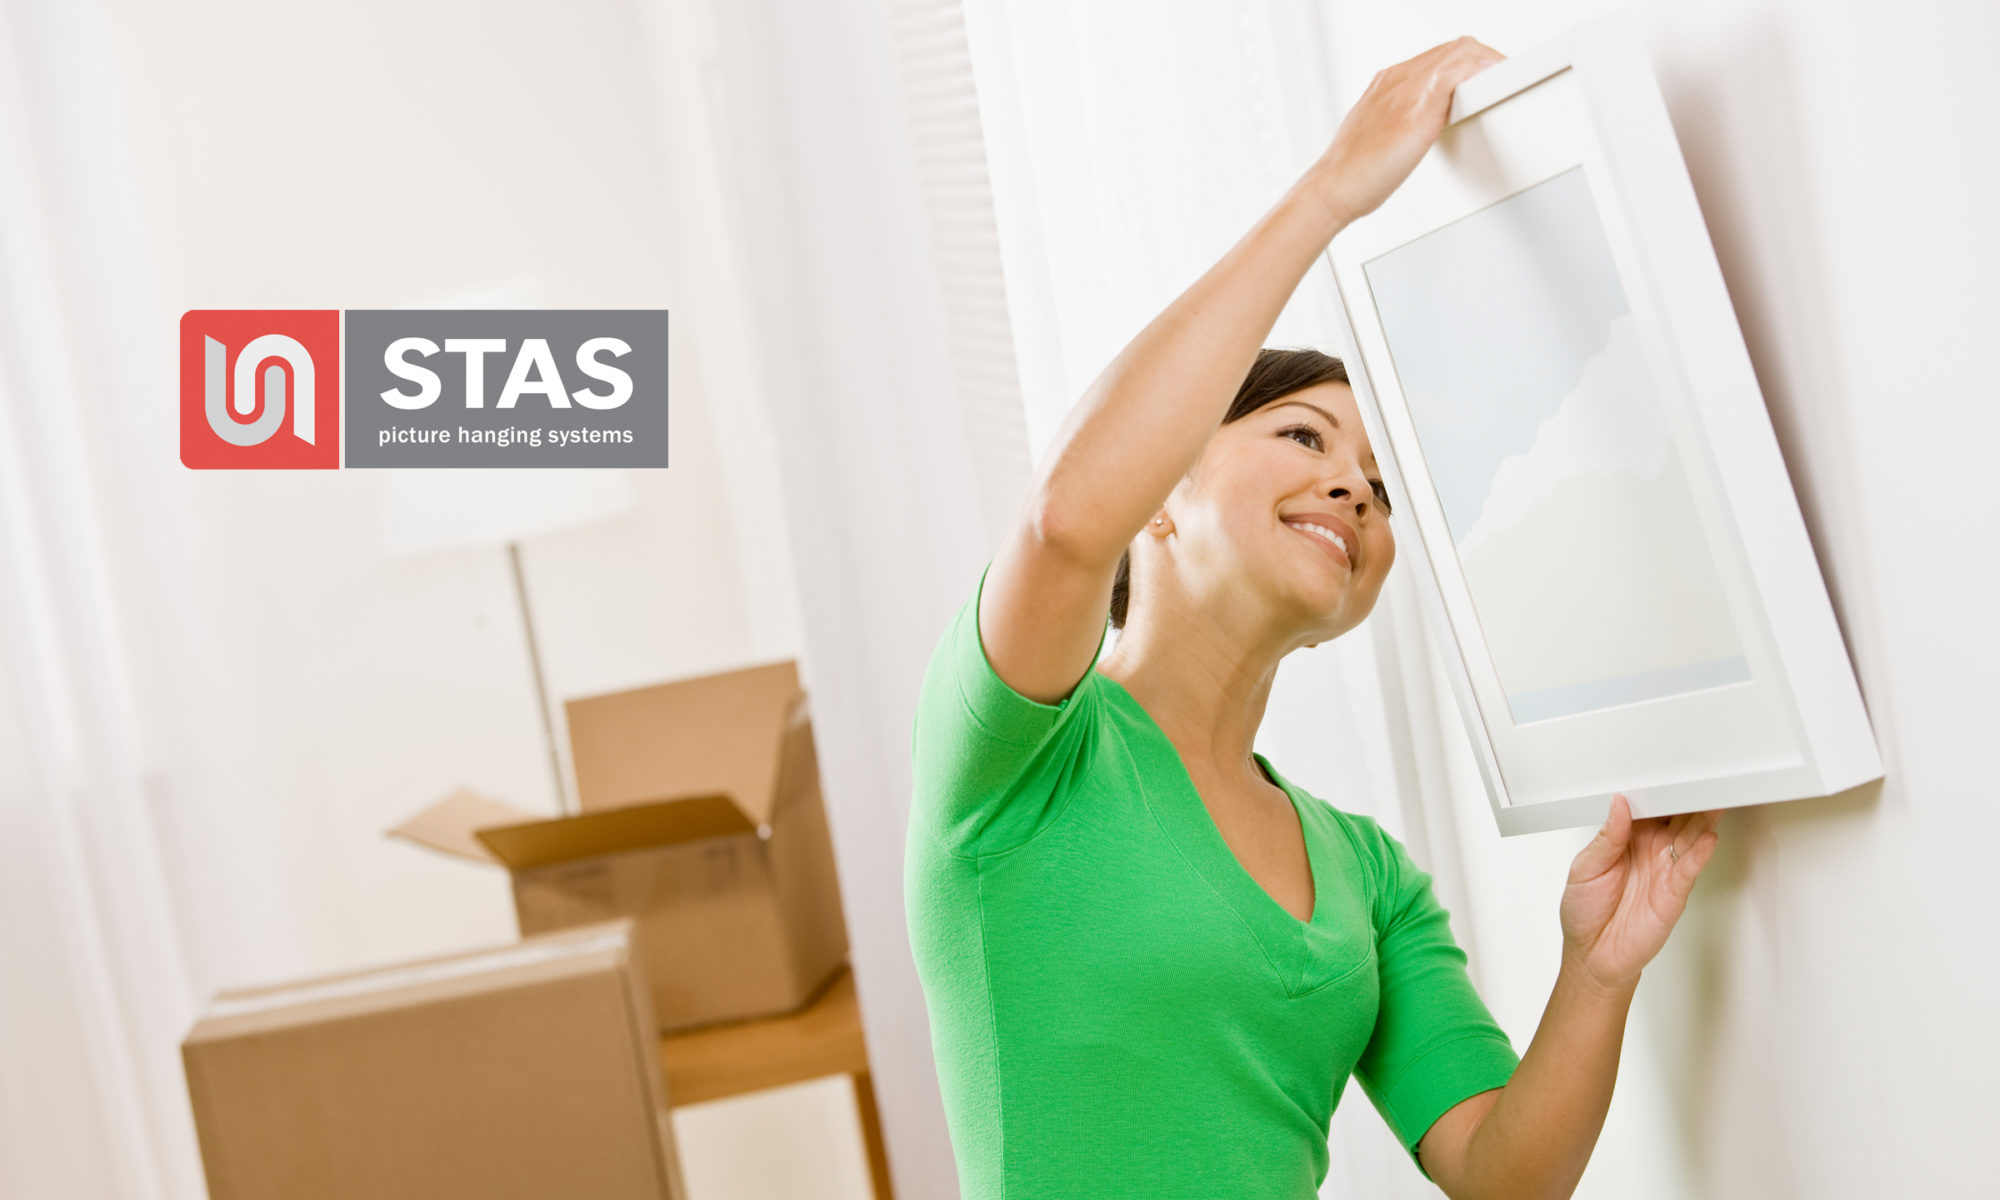 stas picture hanging systems.com